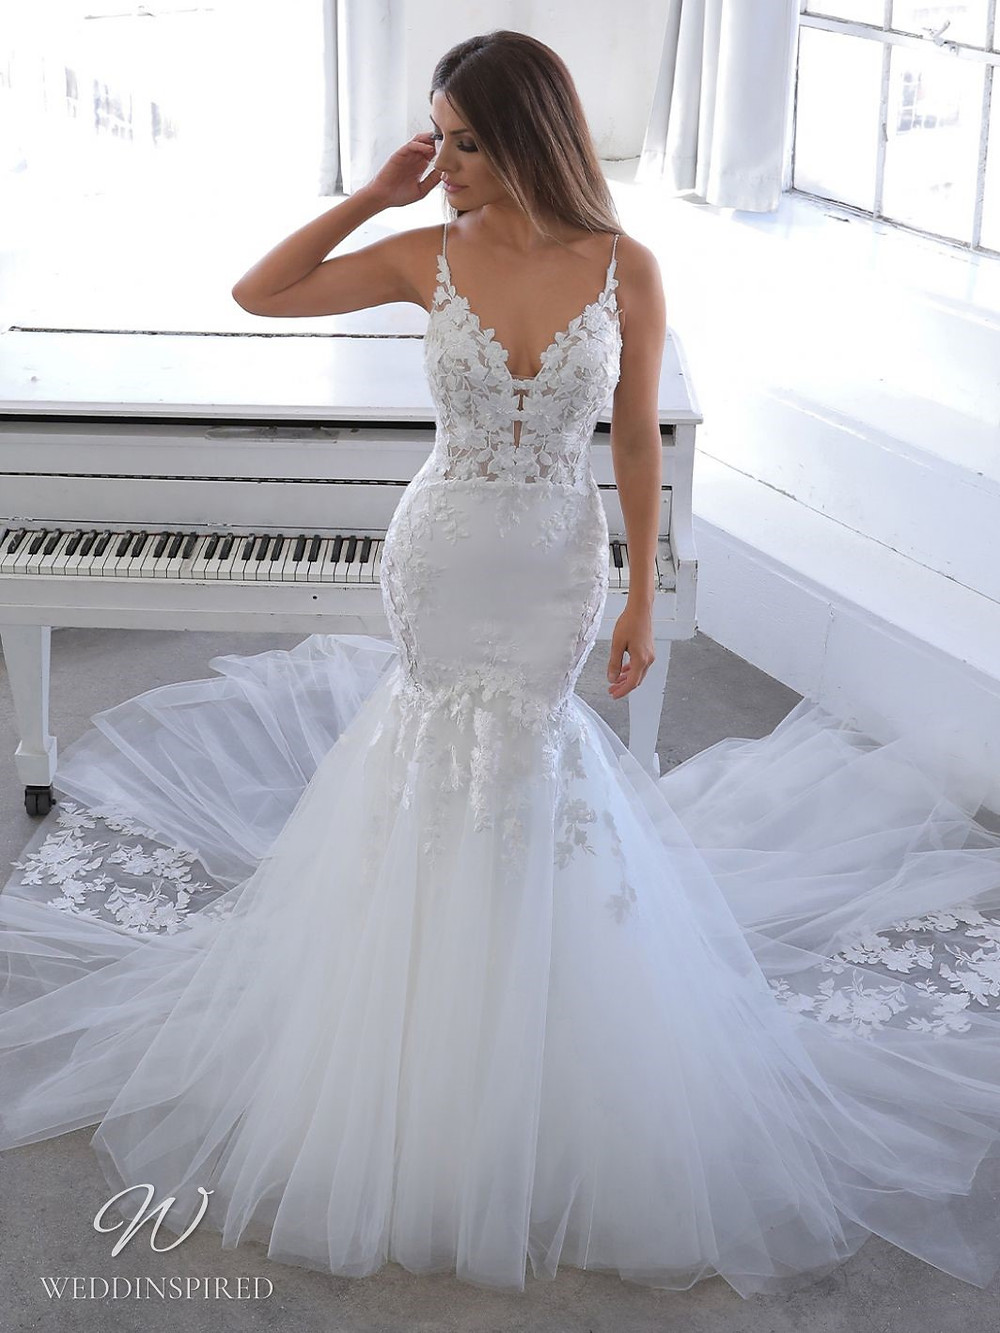 A Blue by Enzoani 2021 lace and tulle mermaid wedding dress with straps and a v neck